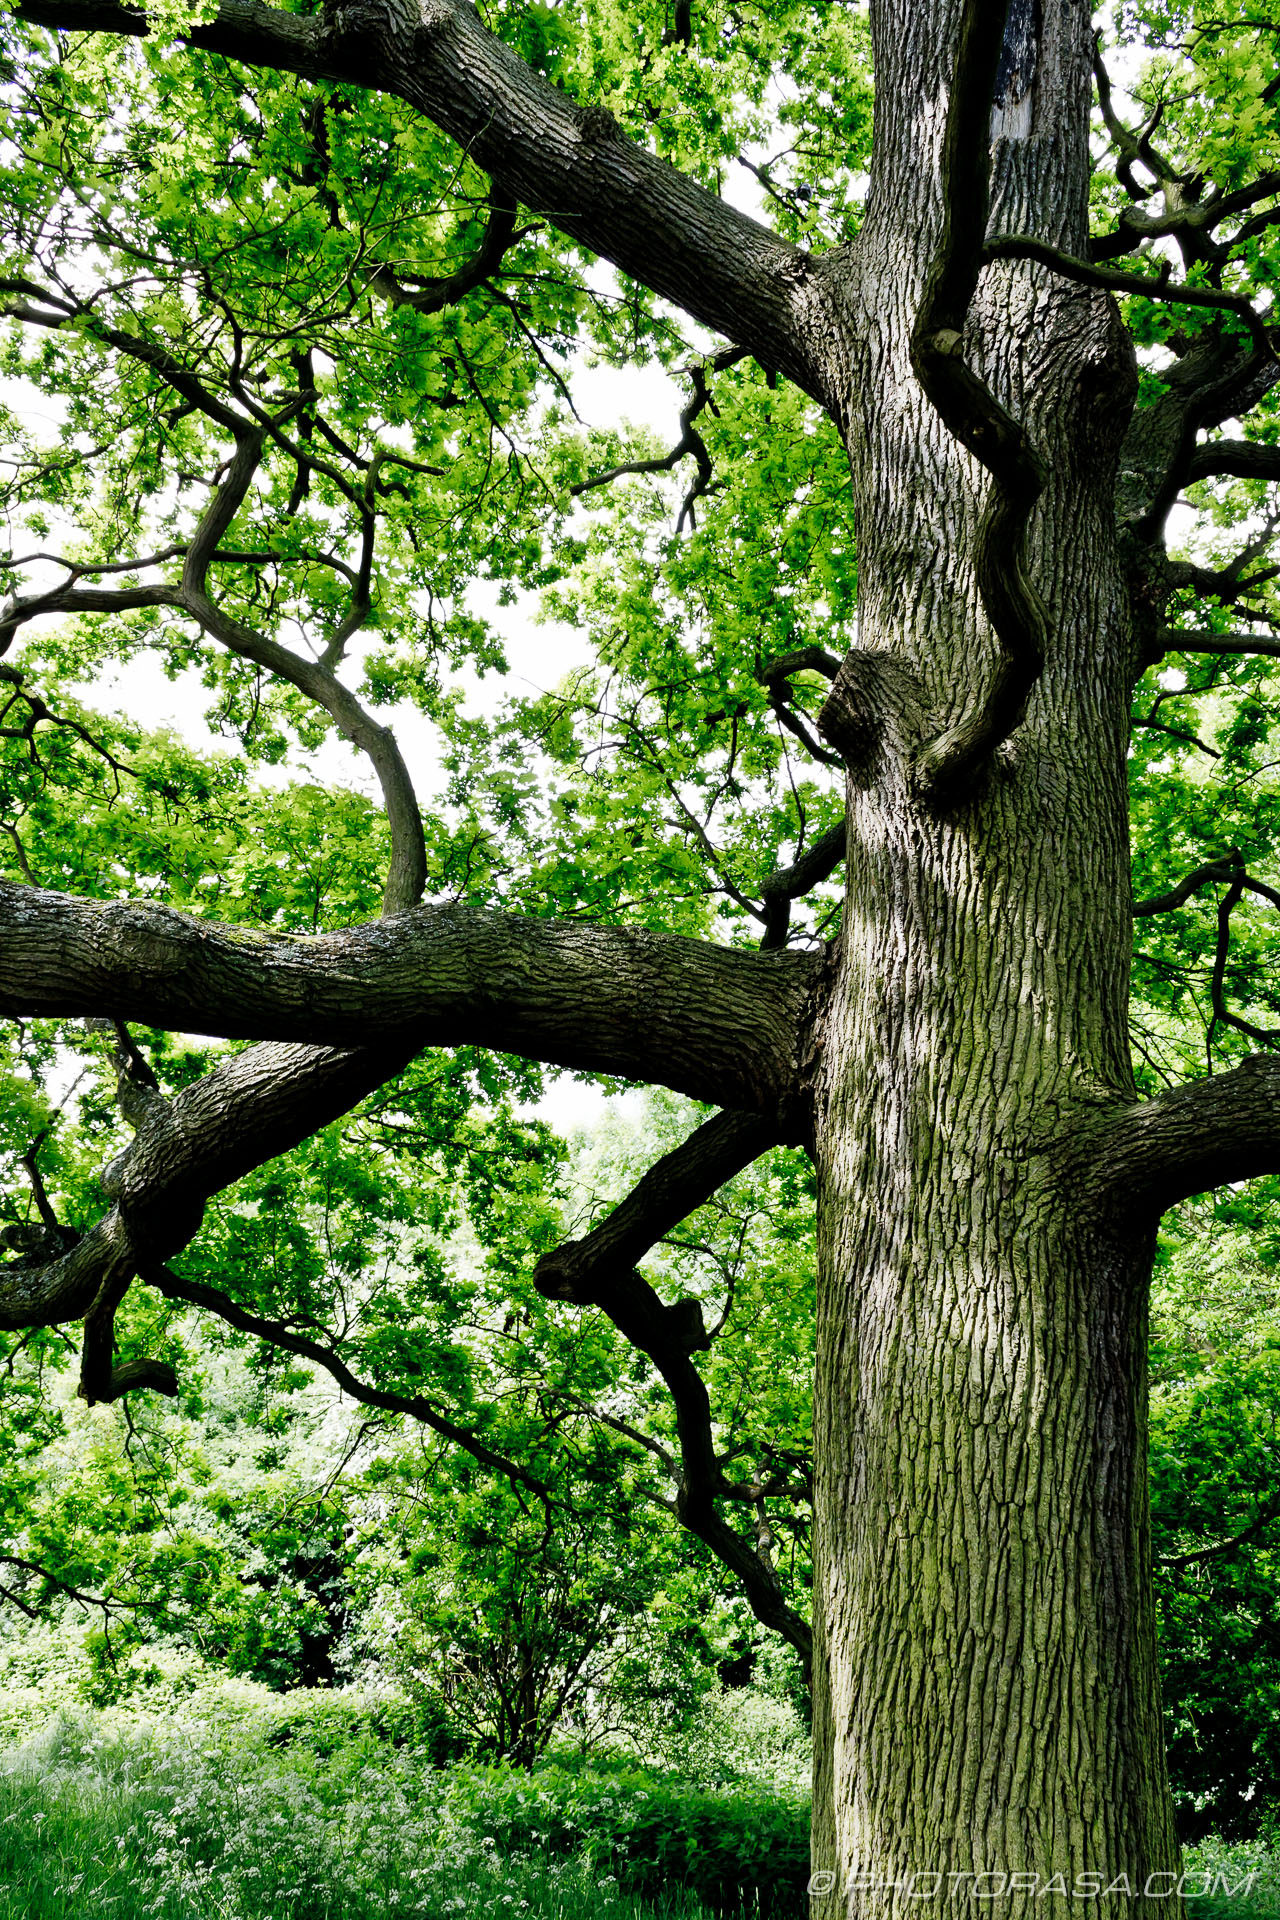 http://photorasa.com/wood-and-bark-textures/oak-trunk-and-branches/